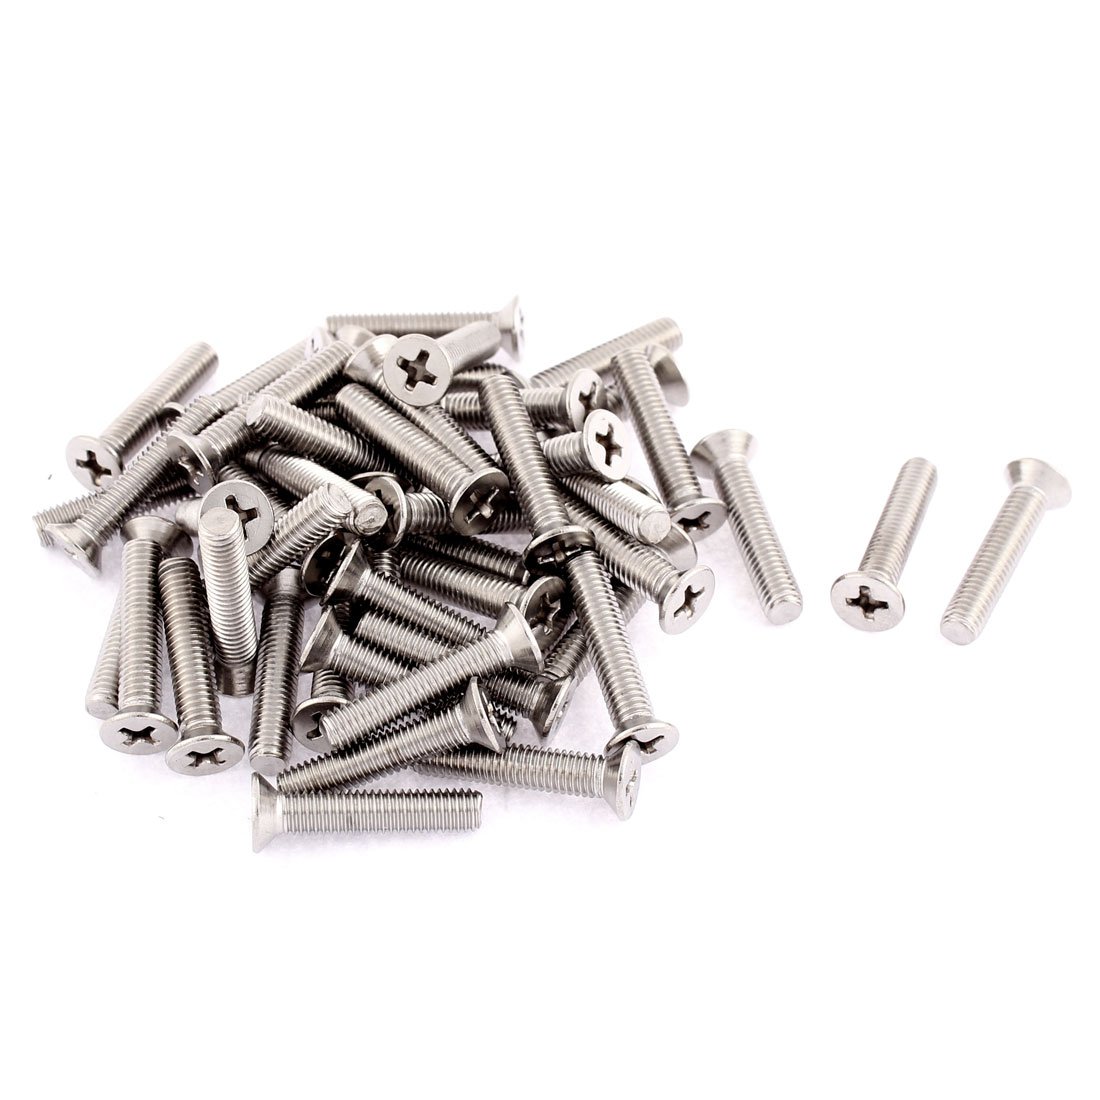 M5 x 25mm Phillips Head Stainless Steel Countersunk Bolts Screws 50 Pcs